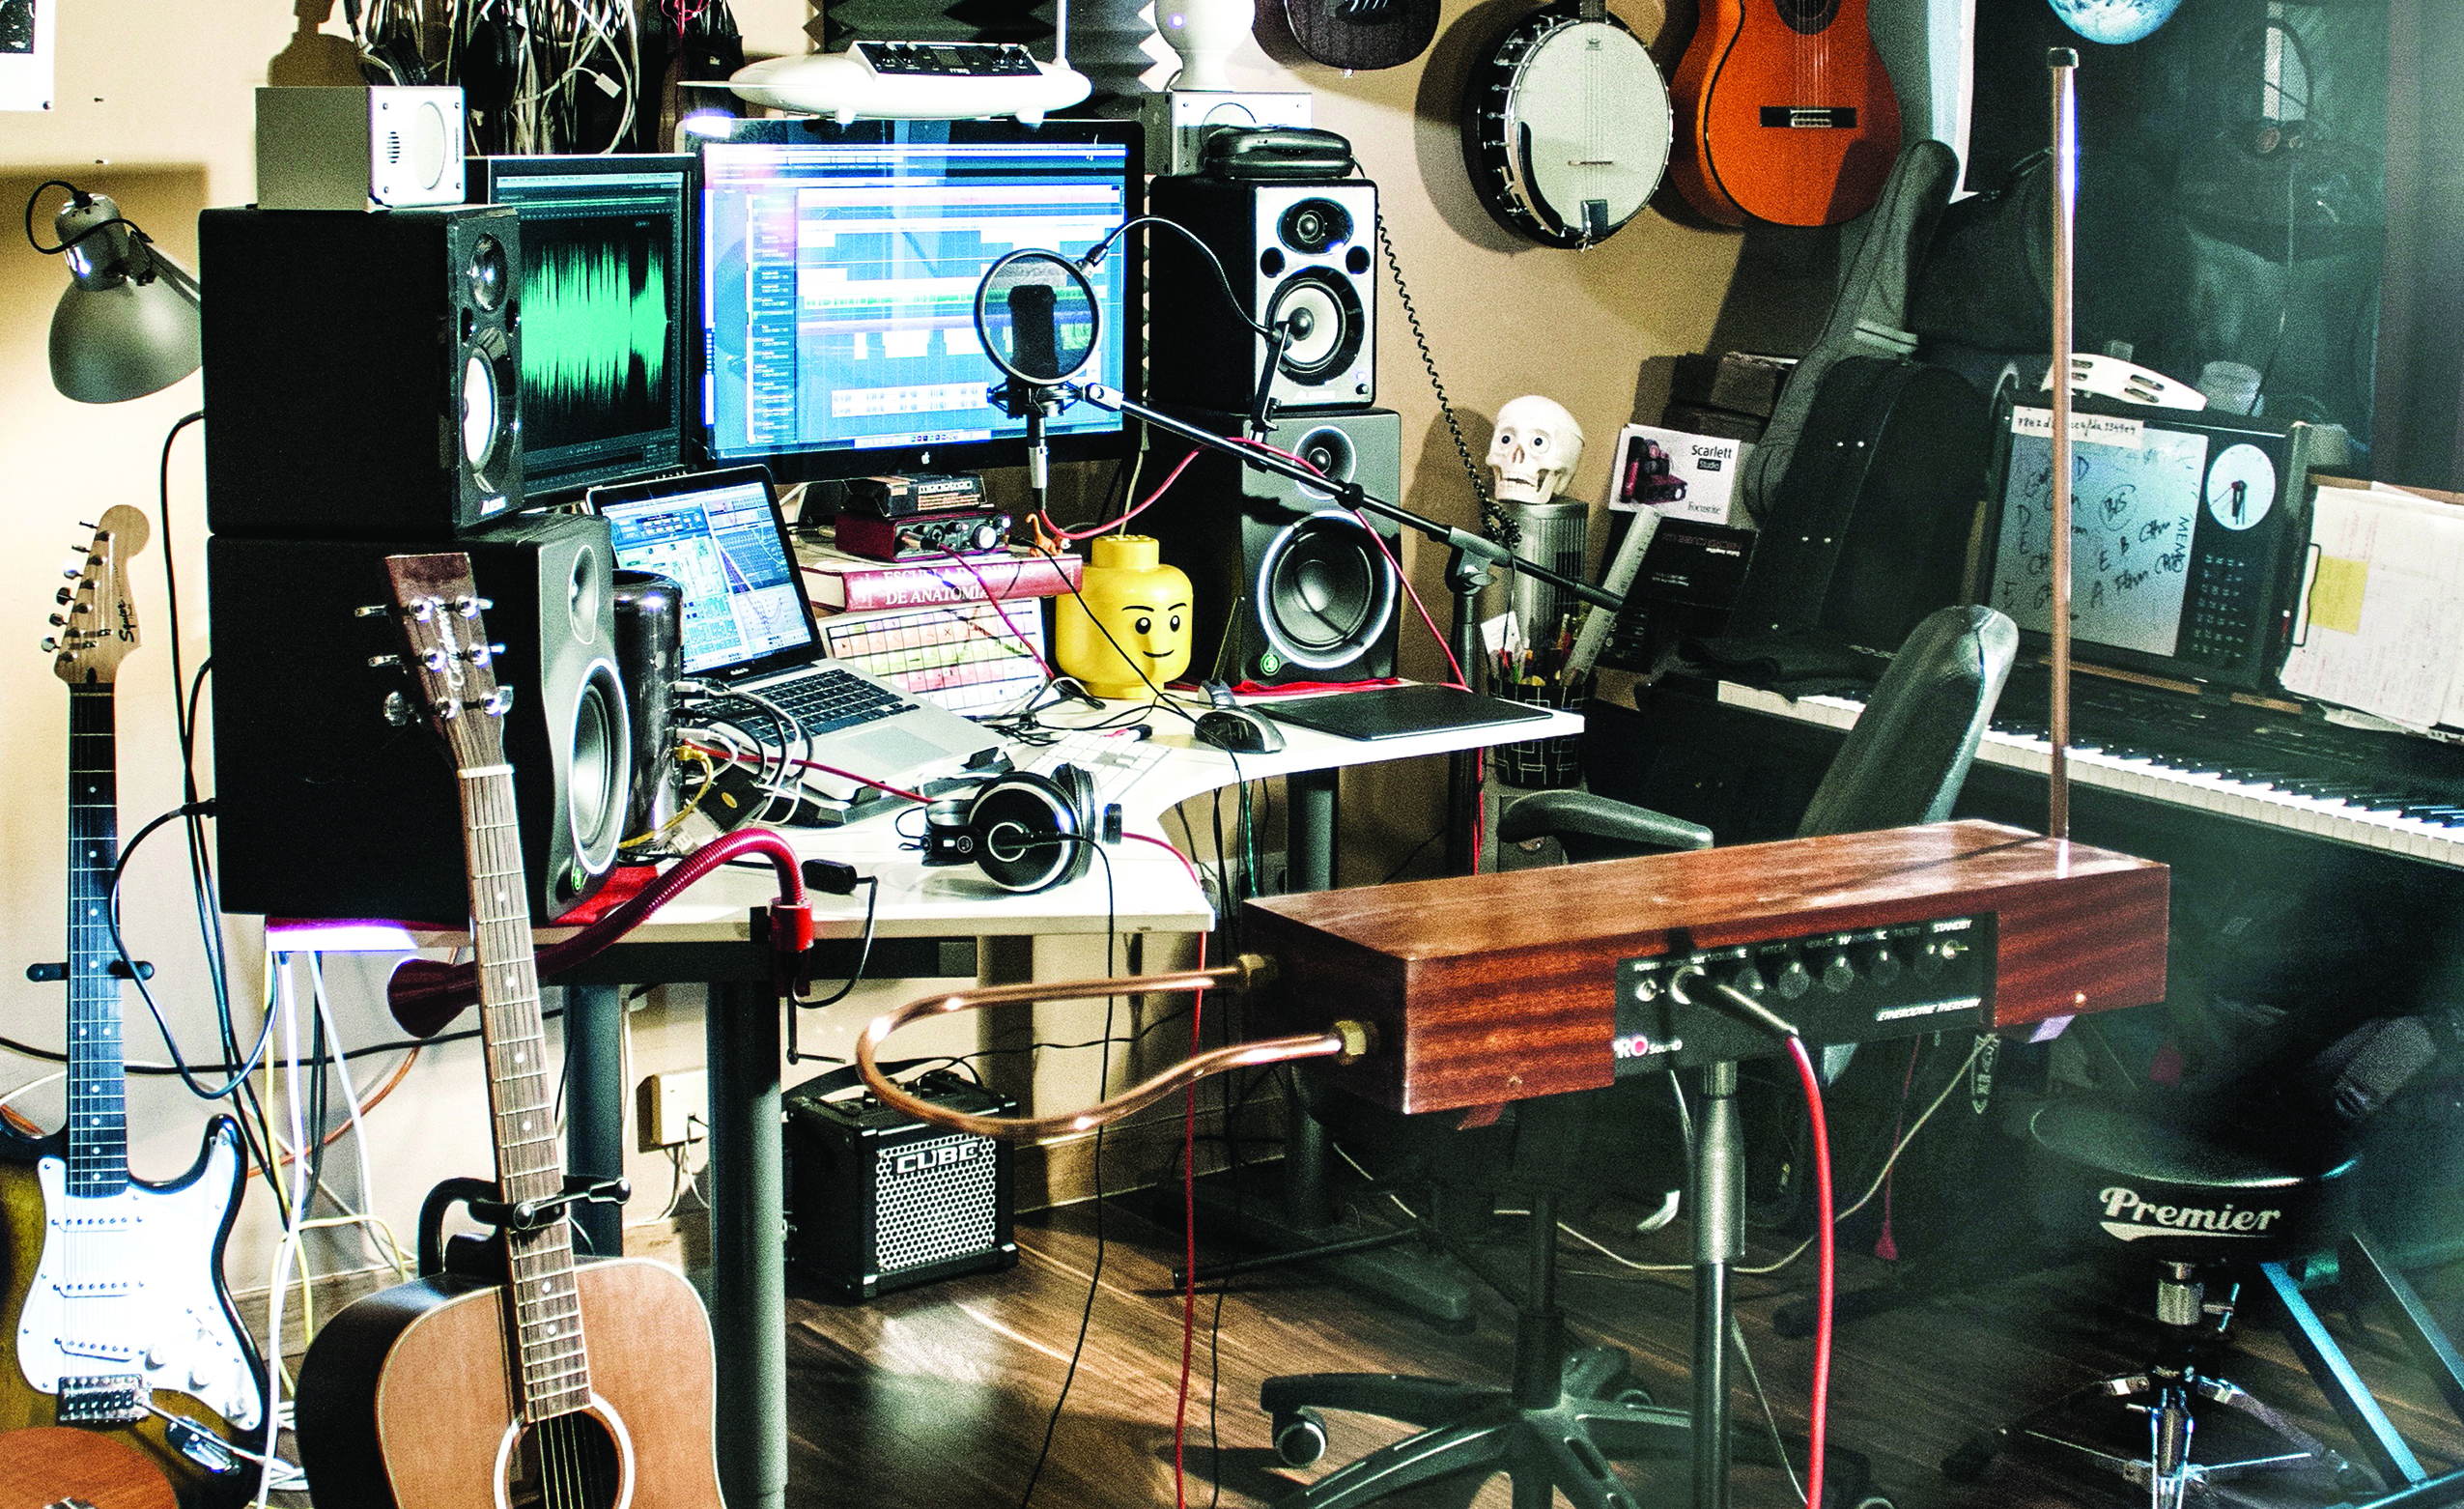 6 More Ways To Make Your Studio Look Cool Recording Wiring Theres So Much Talk About Vintage Gear These Days And Even If Youre Still Undecided On Its Merits Whether You Should Use It Emulate